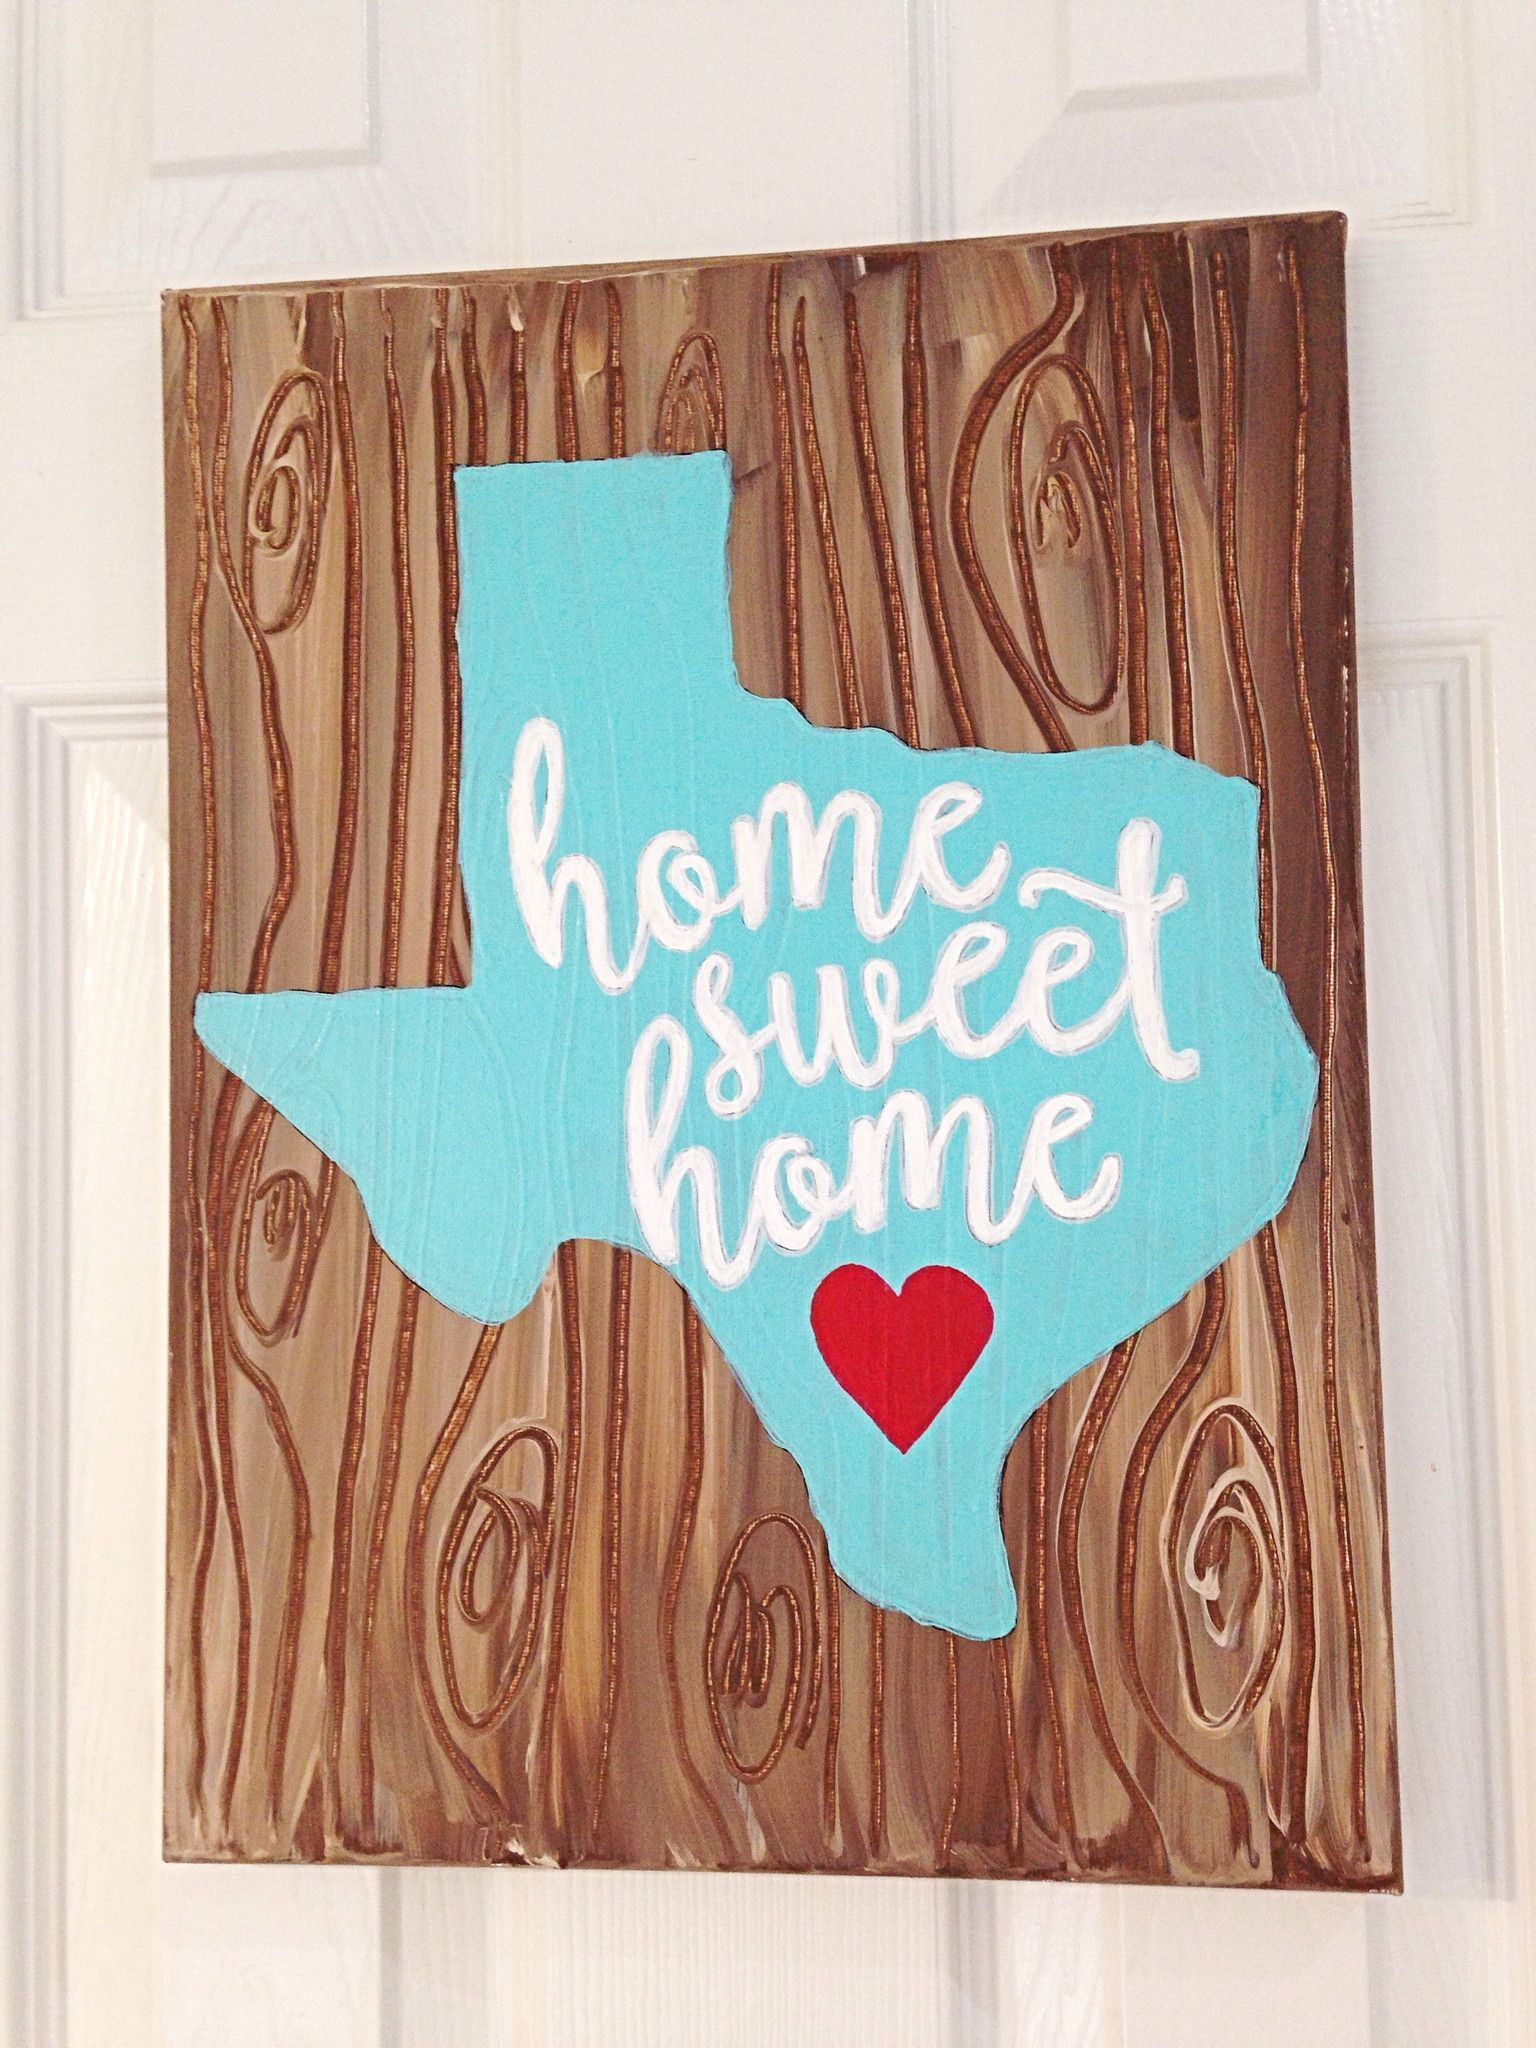 Primitive stencil home sweet home 12x12 for painting signs crafts - Home Sweet Home